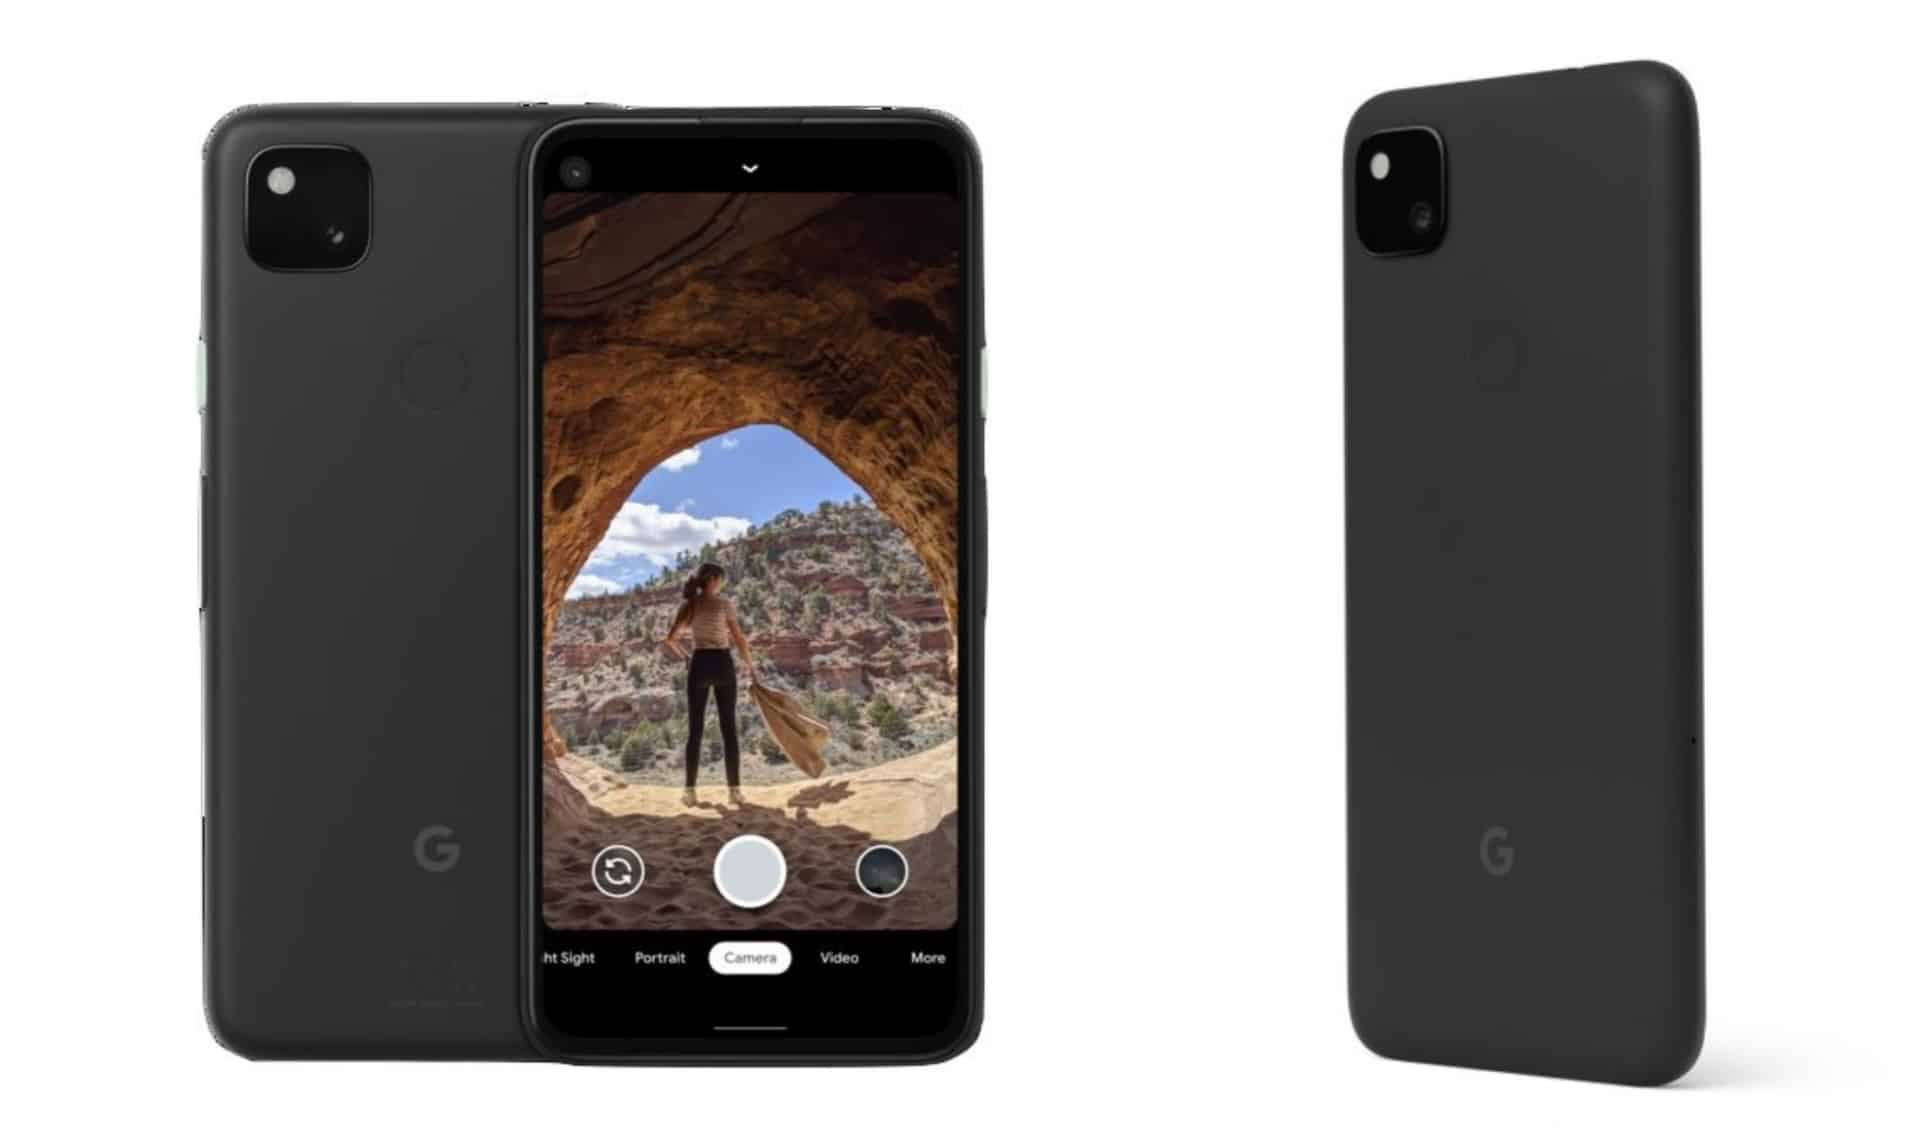 Google Pixel 4a Specs Leak Ahead of Its Launch, Will Cost $349